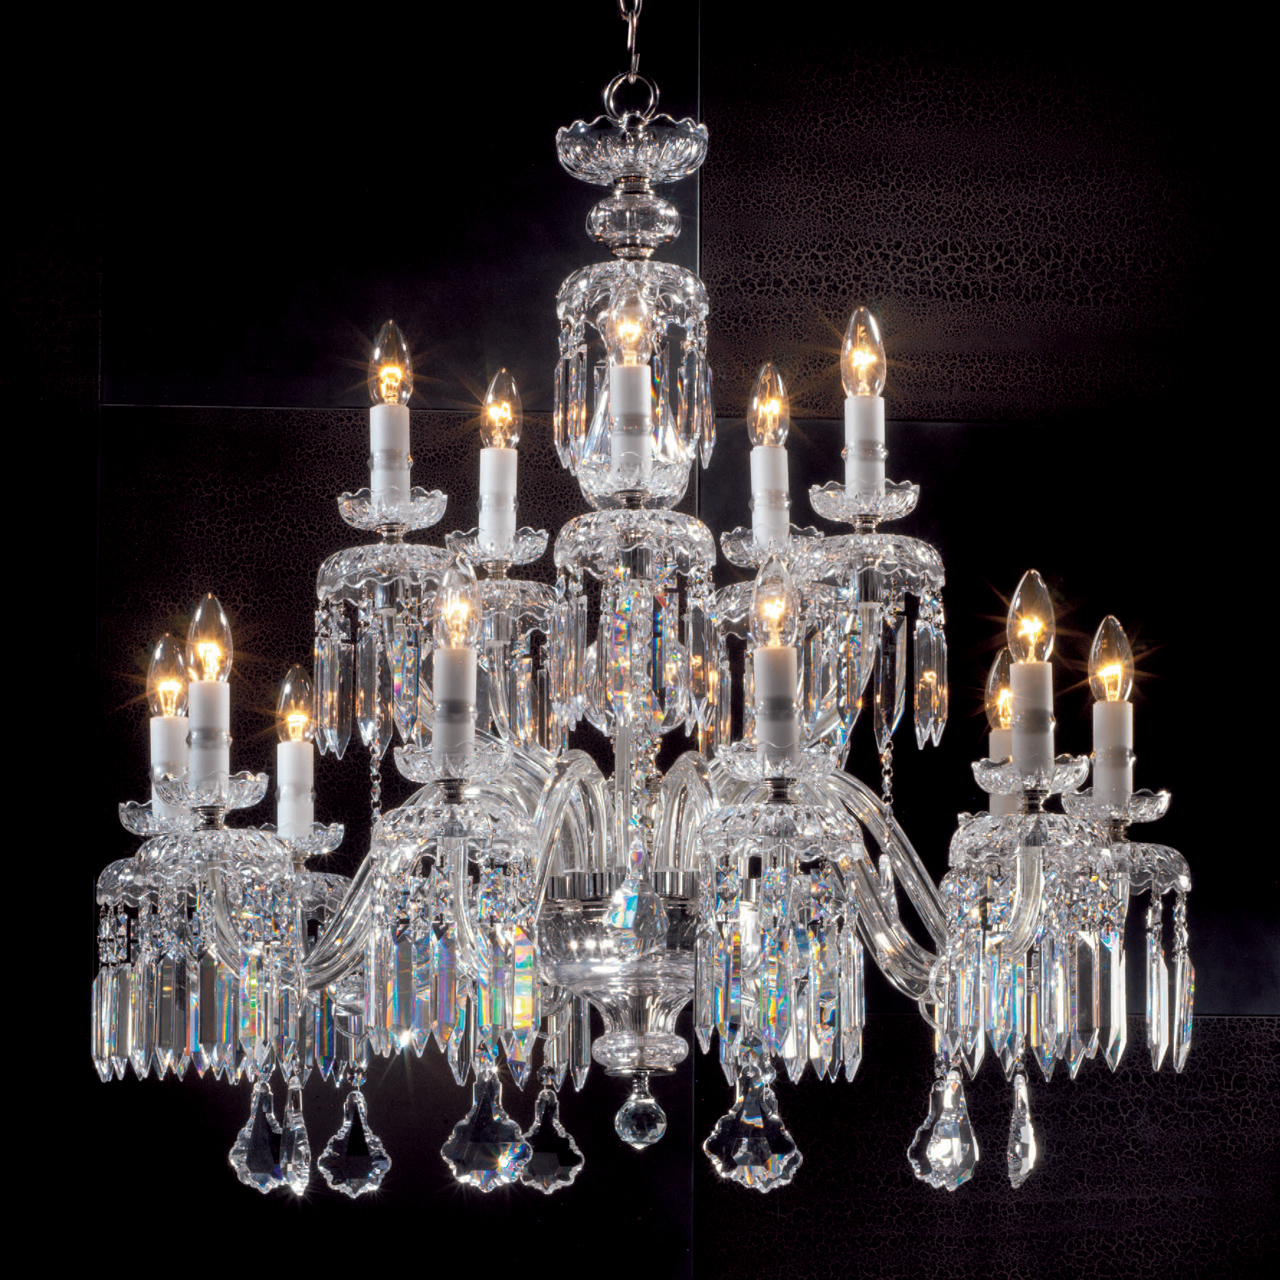 Crystal chandeliers 94 551 10 5 94 551 10 5 arubaitofo Images